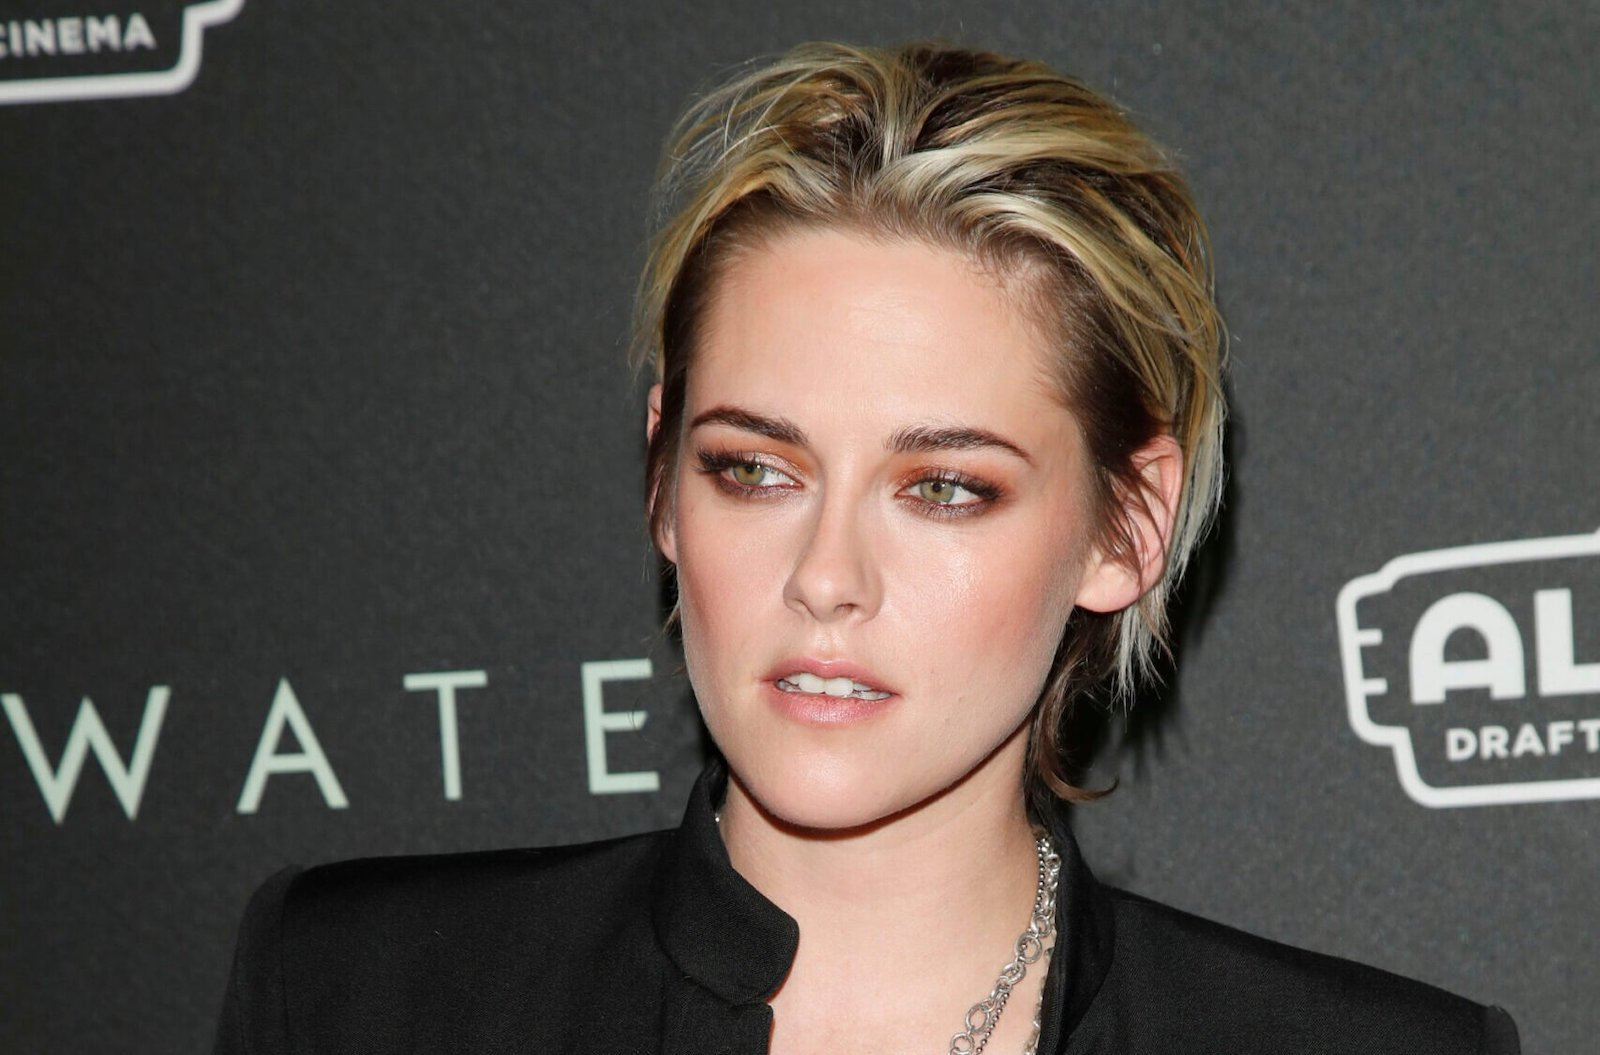 Spencer': When will we see Kristen Stewart as Princess Diana? – Film Daily